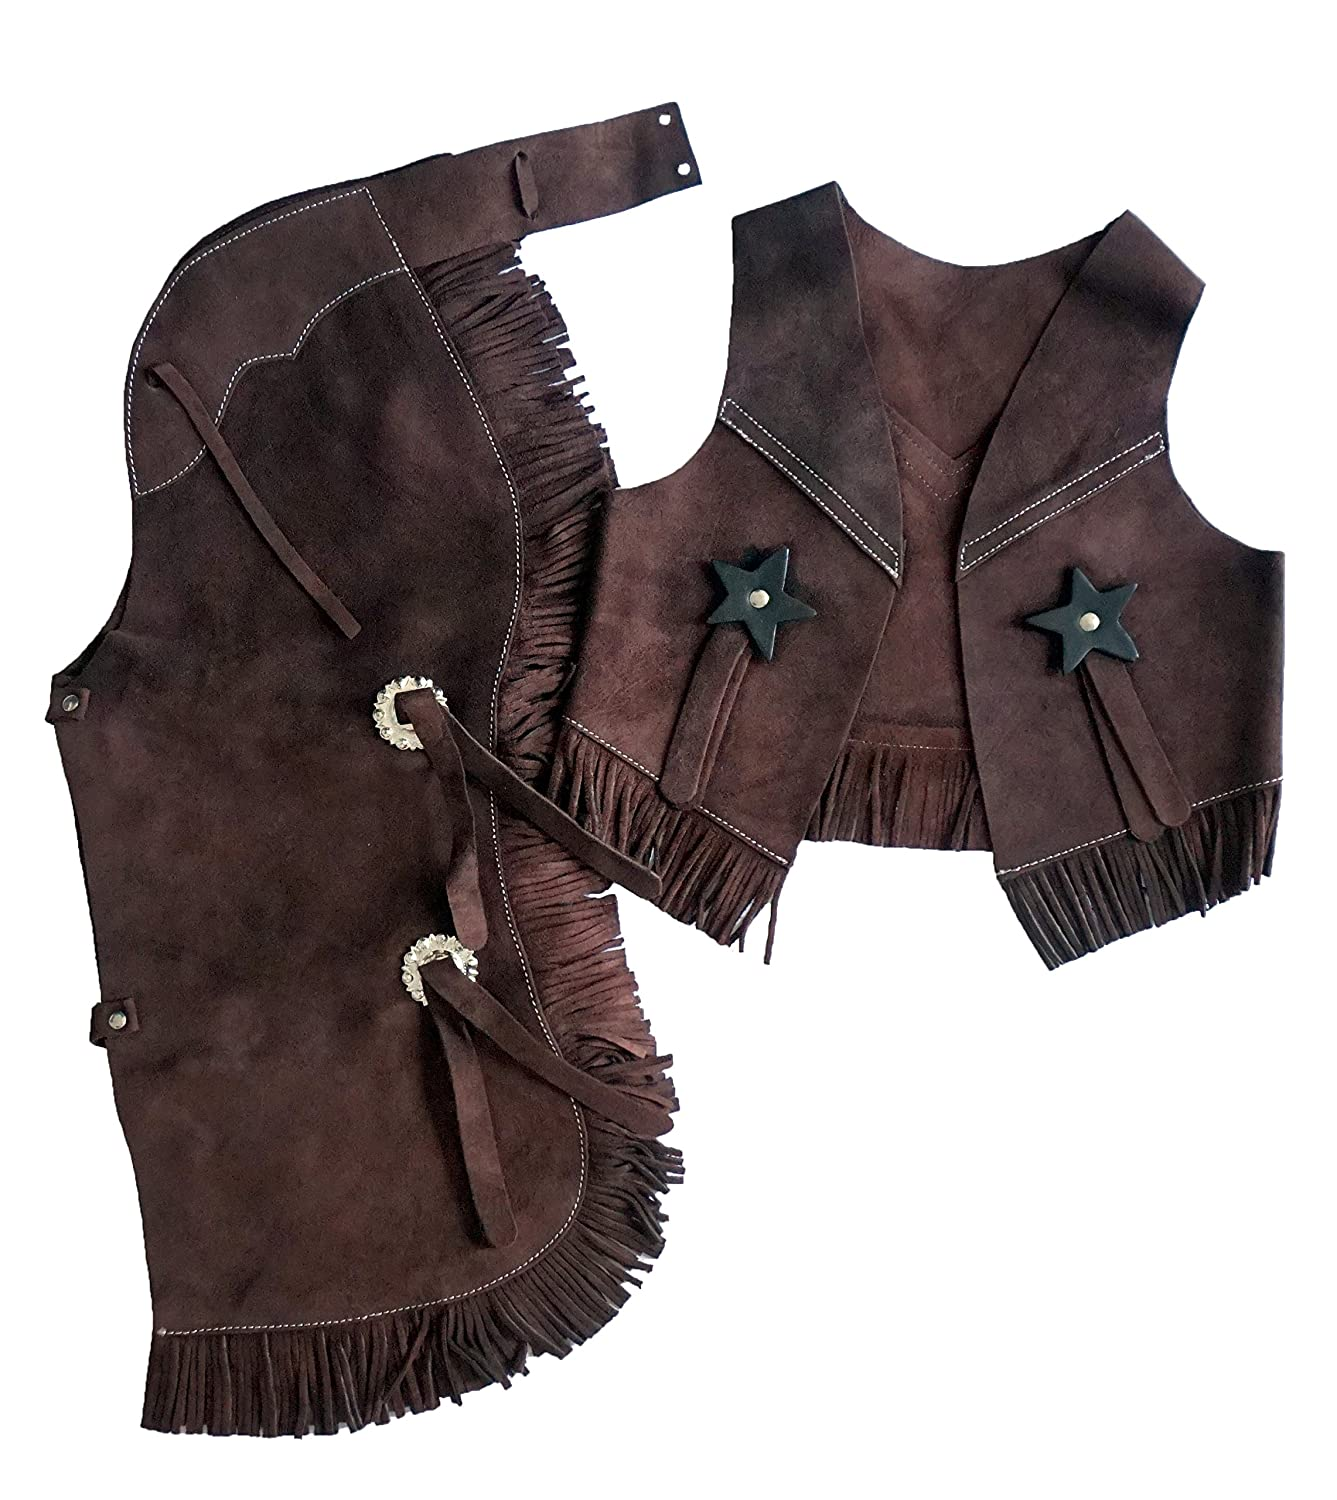 2-4 Brown, Small Equitem Childrens Suede Leather Western Chaps and Vest Set